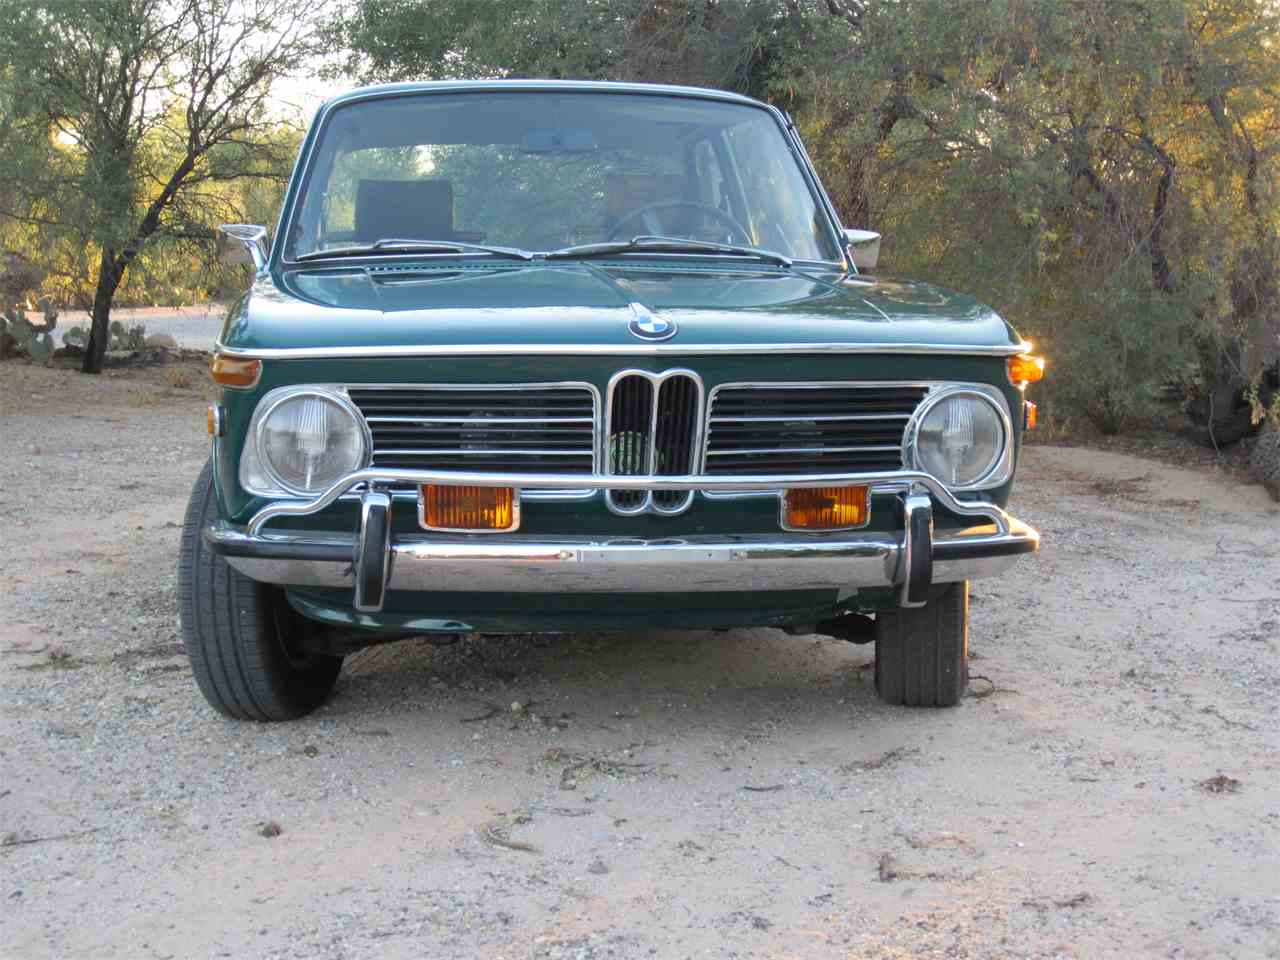 Dorable 1972 Bmw 2002 Wiring Diagram Inspiration - Electrical ...